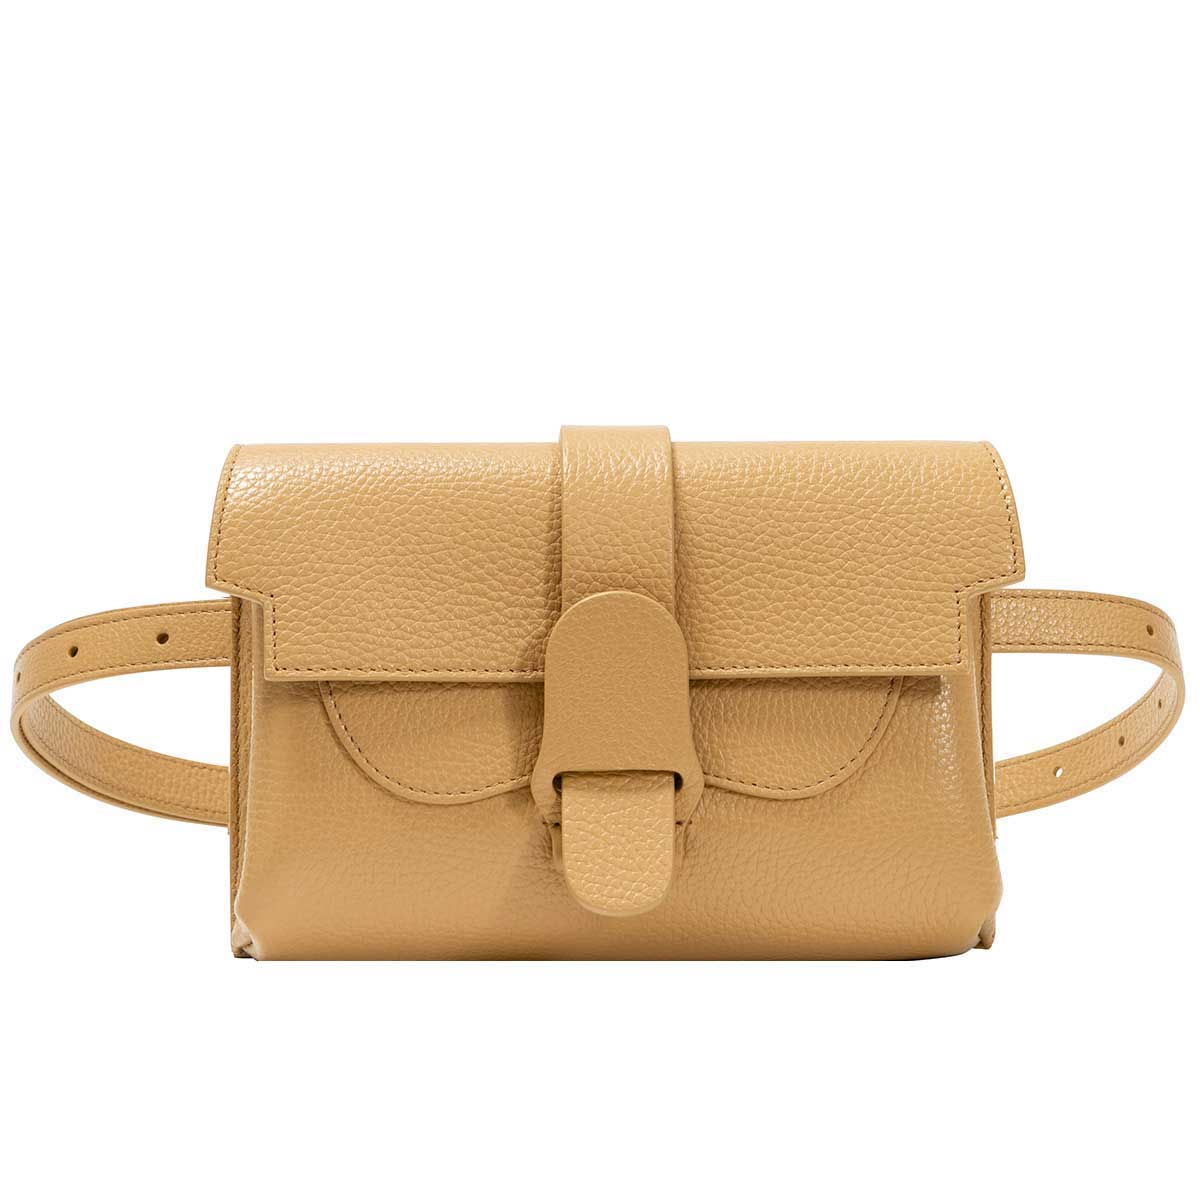 Aria Belt Bag in Dolce Butterscotch